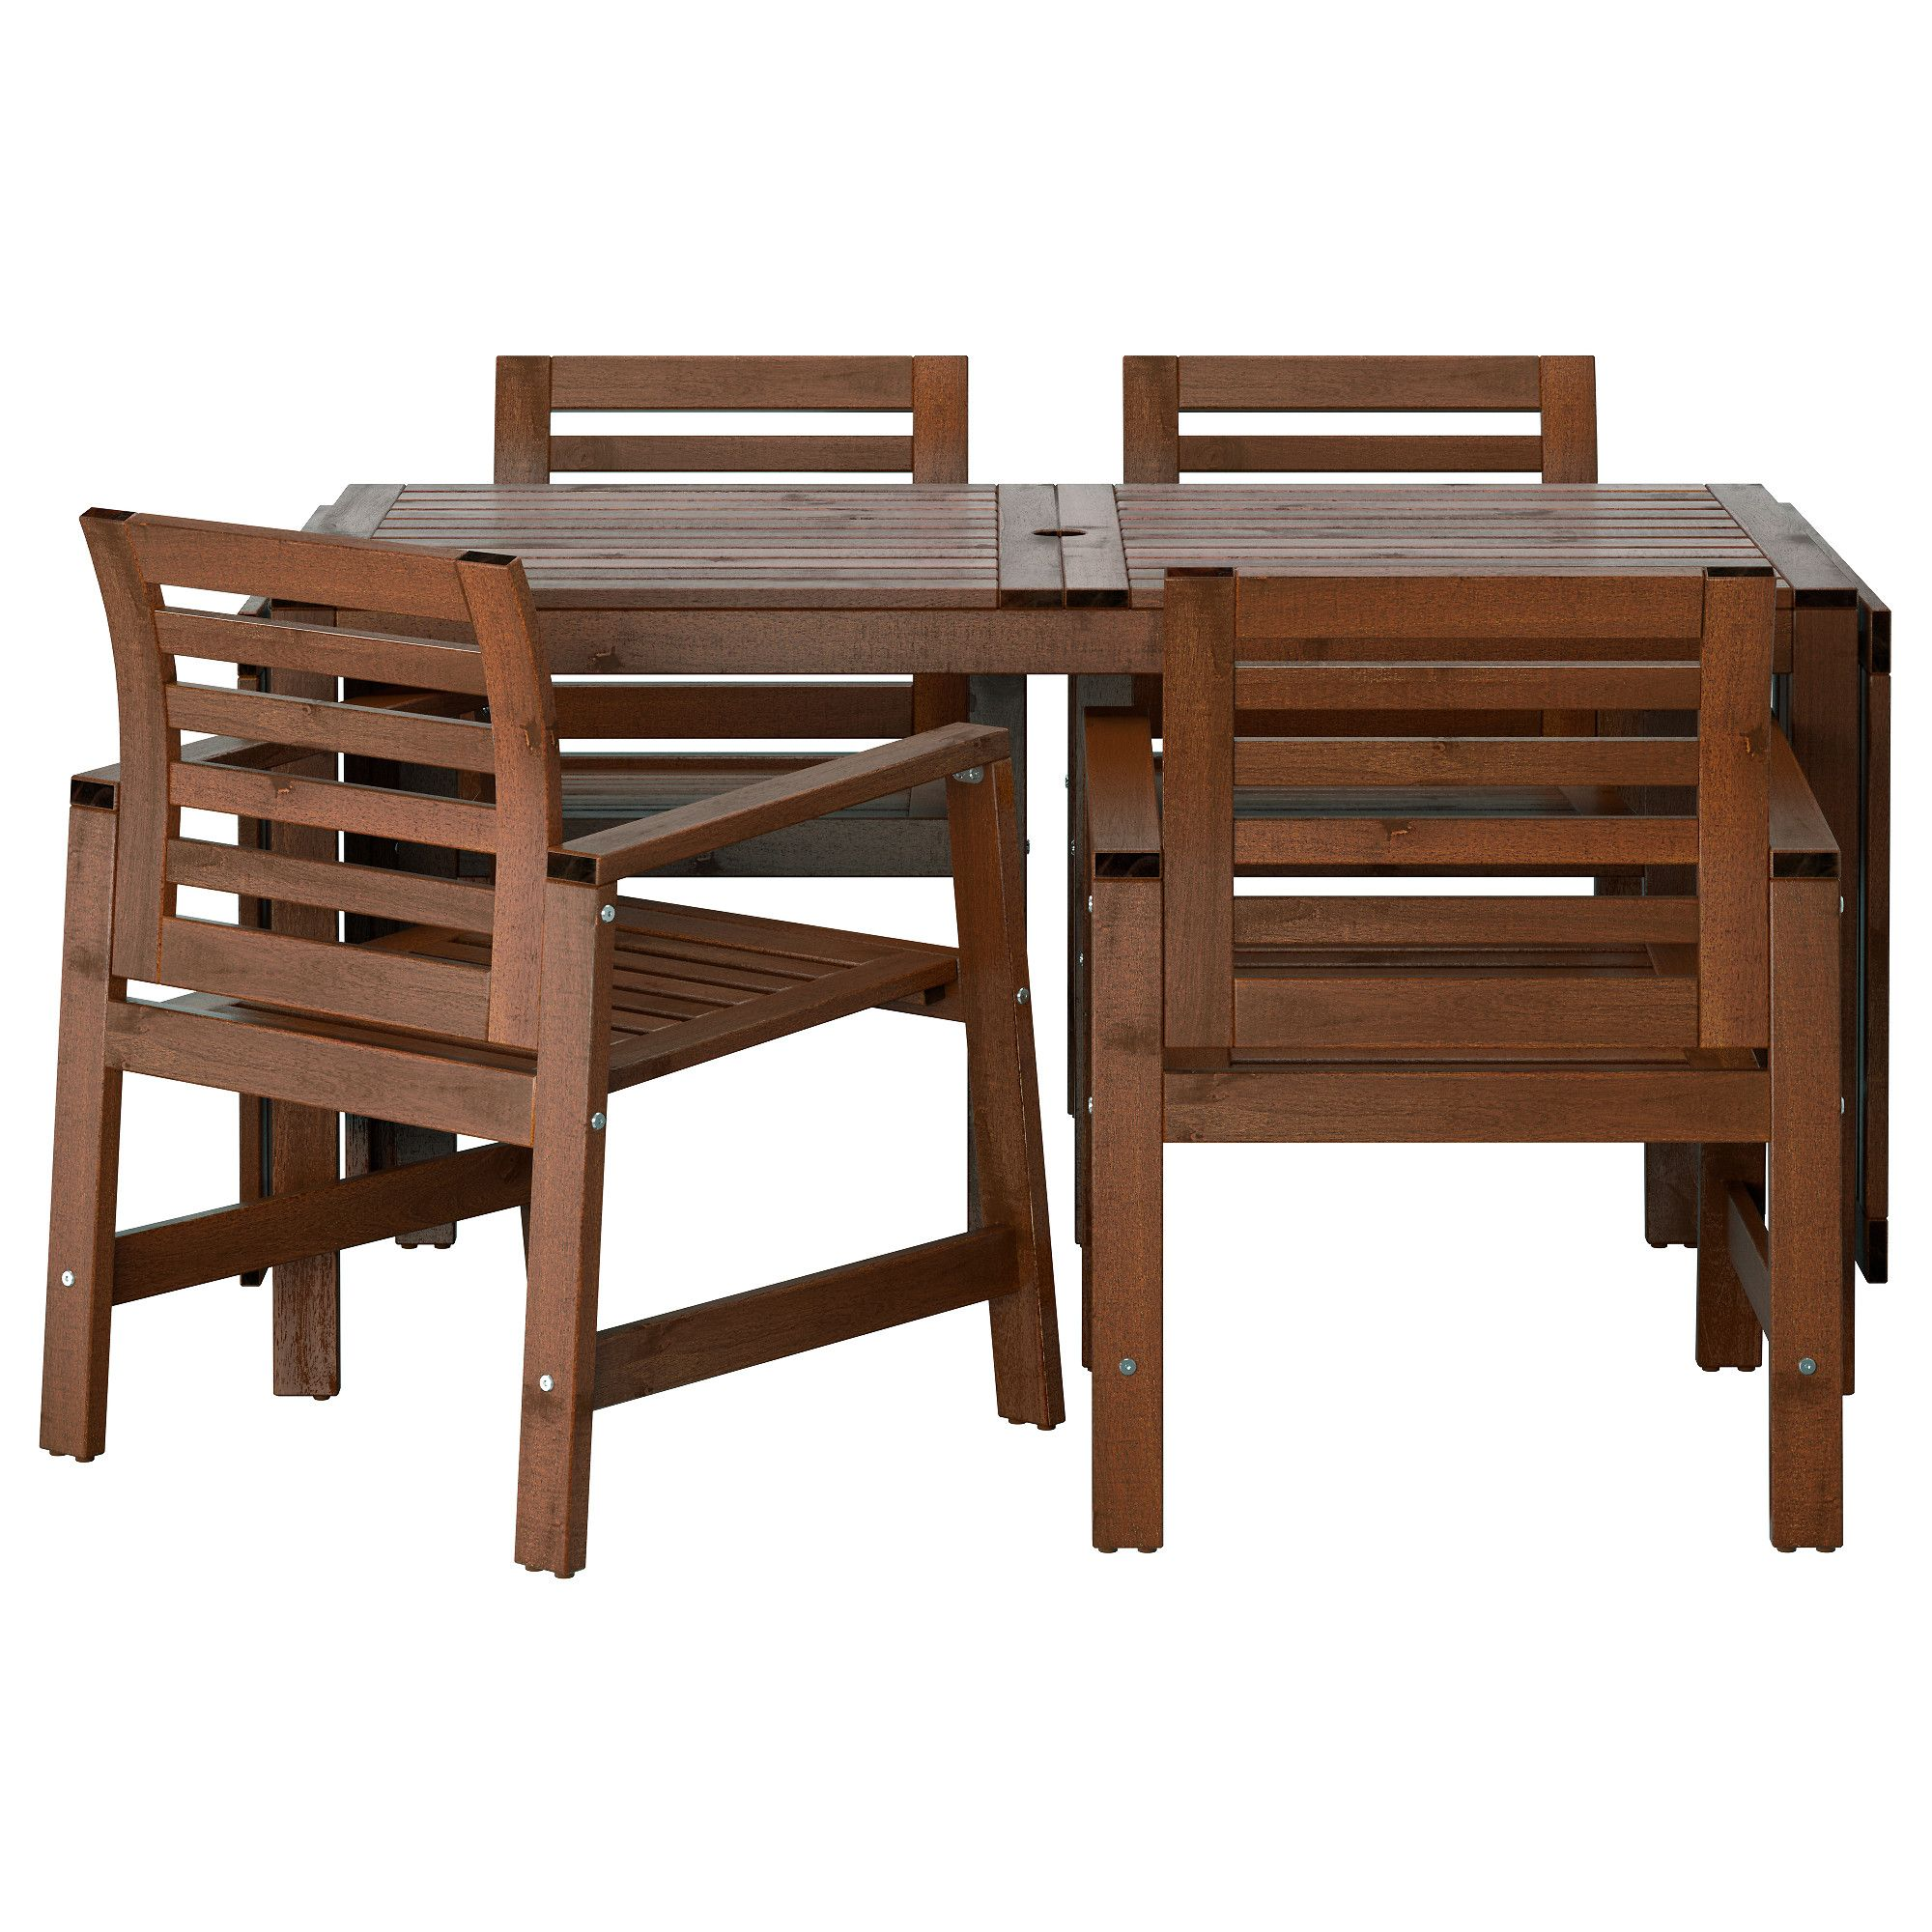 pplar table and 4 armchairs outdoor brown stained backyard pinterest gartenmoebel. Black Bedroom Furniture Sets. Home Design Ideas